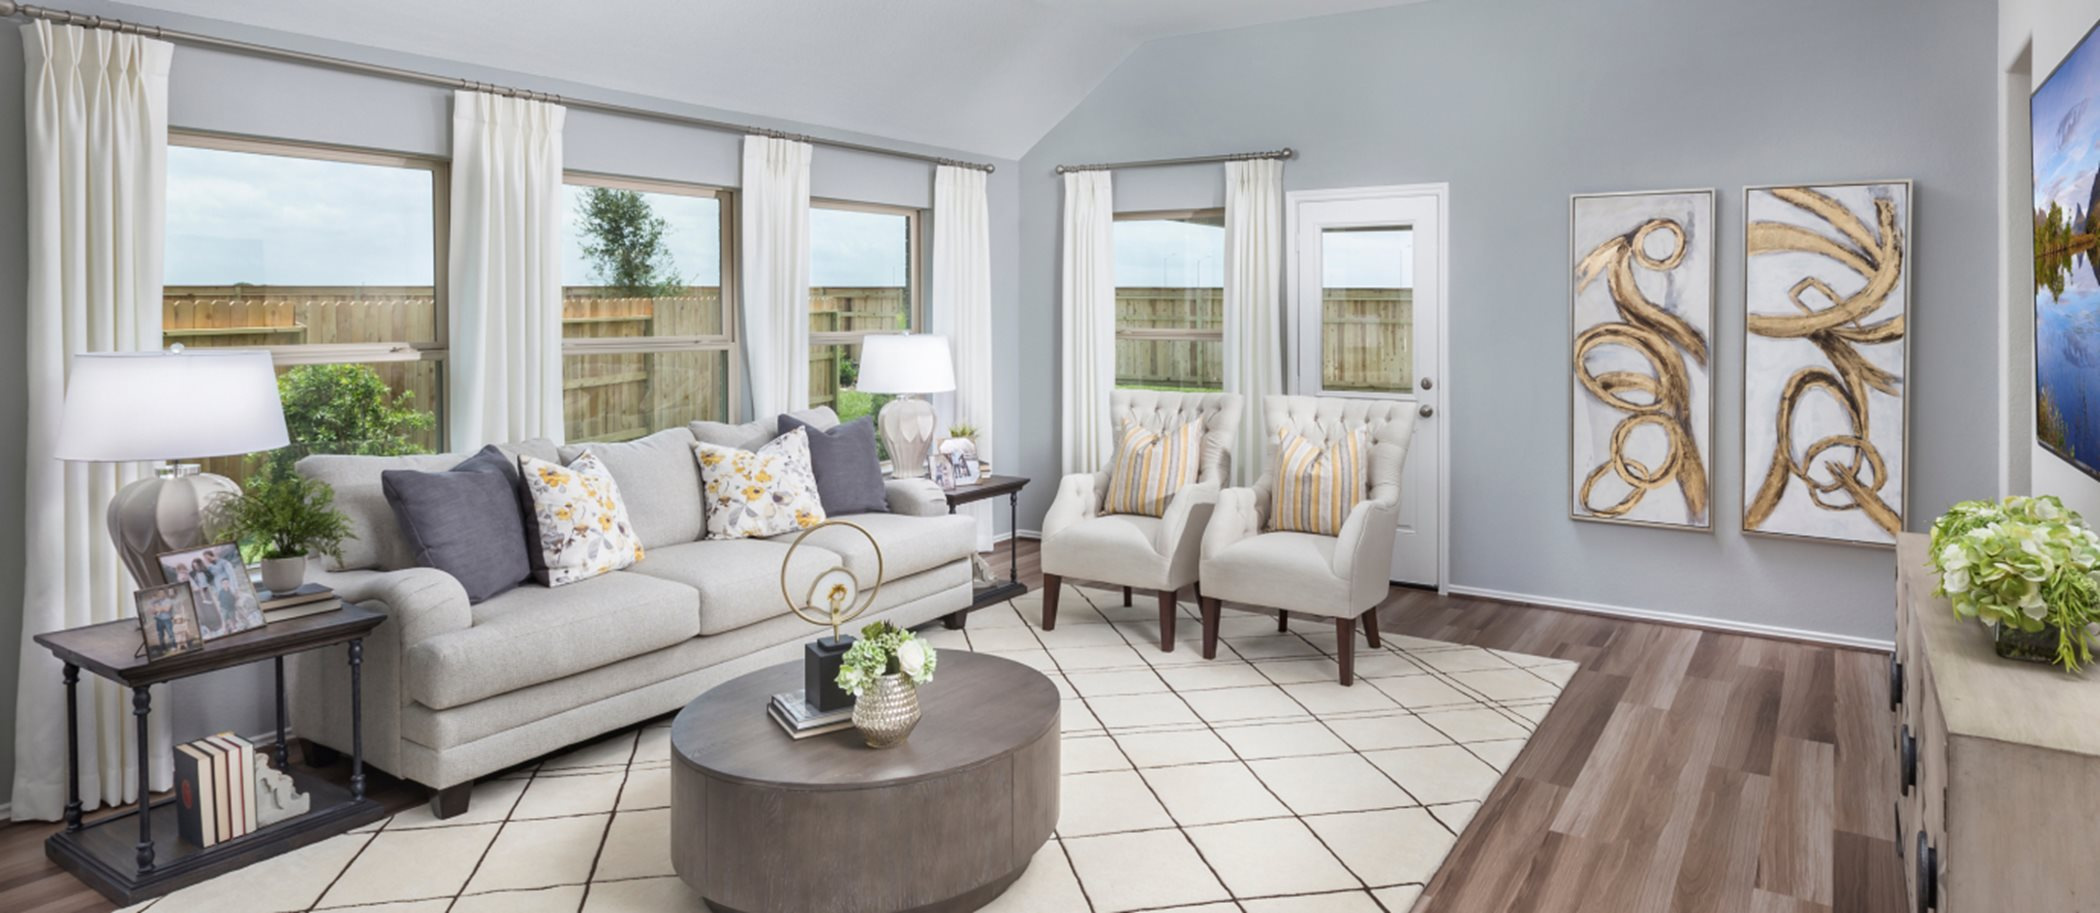 Ashbel-Cove-at-Baytown-Crossings Wildflower Collection Clover Room